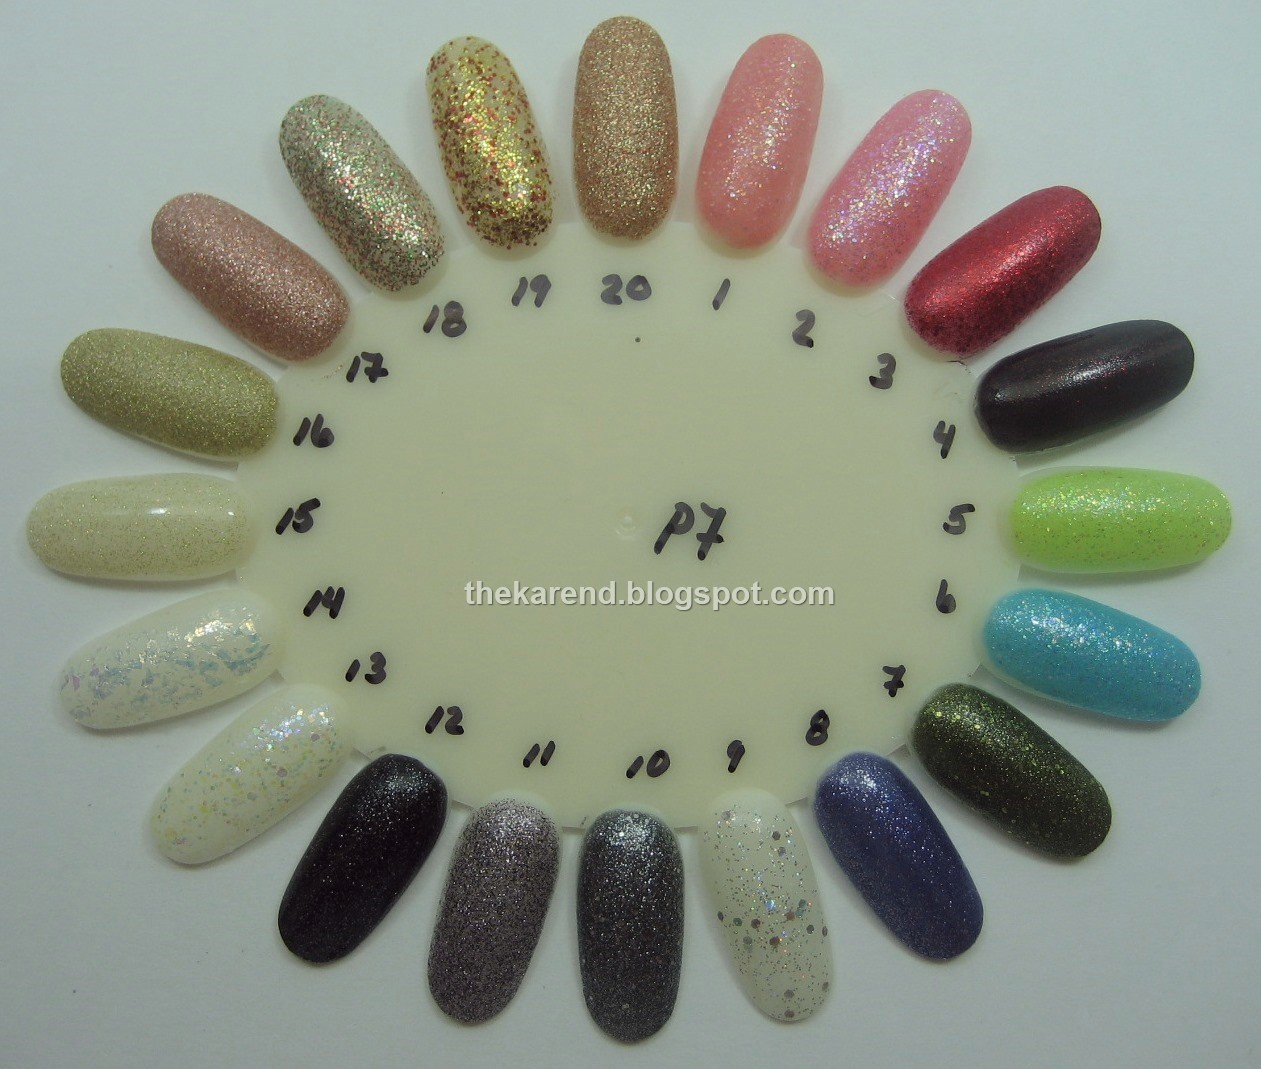 Frazzle and Aniploish: Wheel P7: Glitters from China Glaze